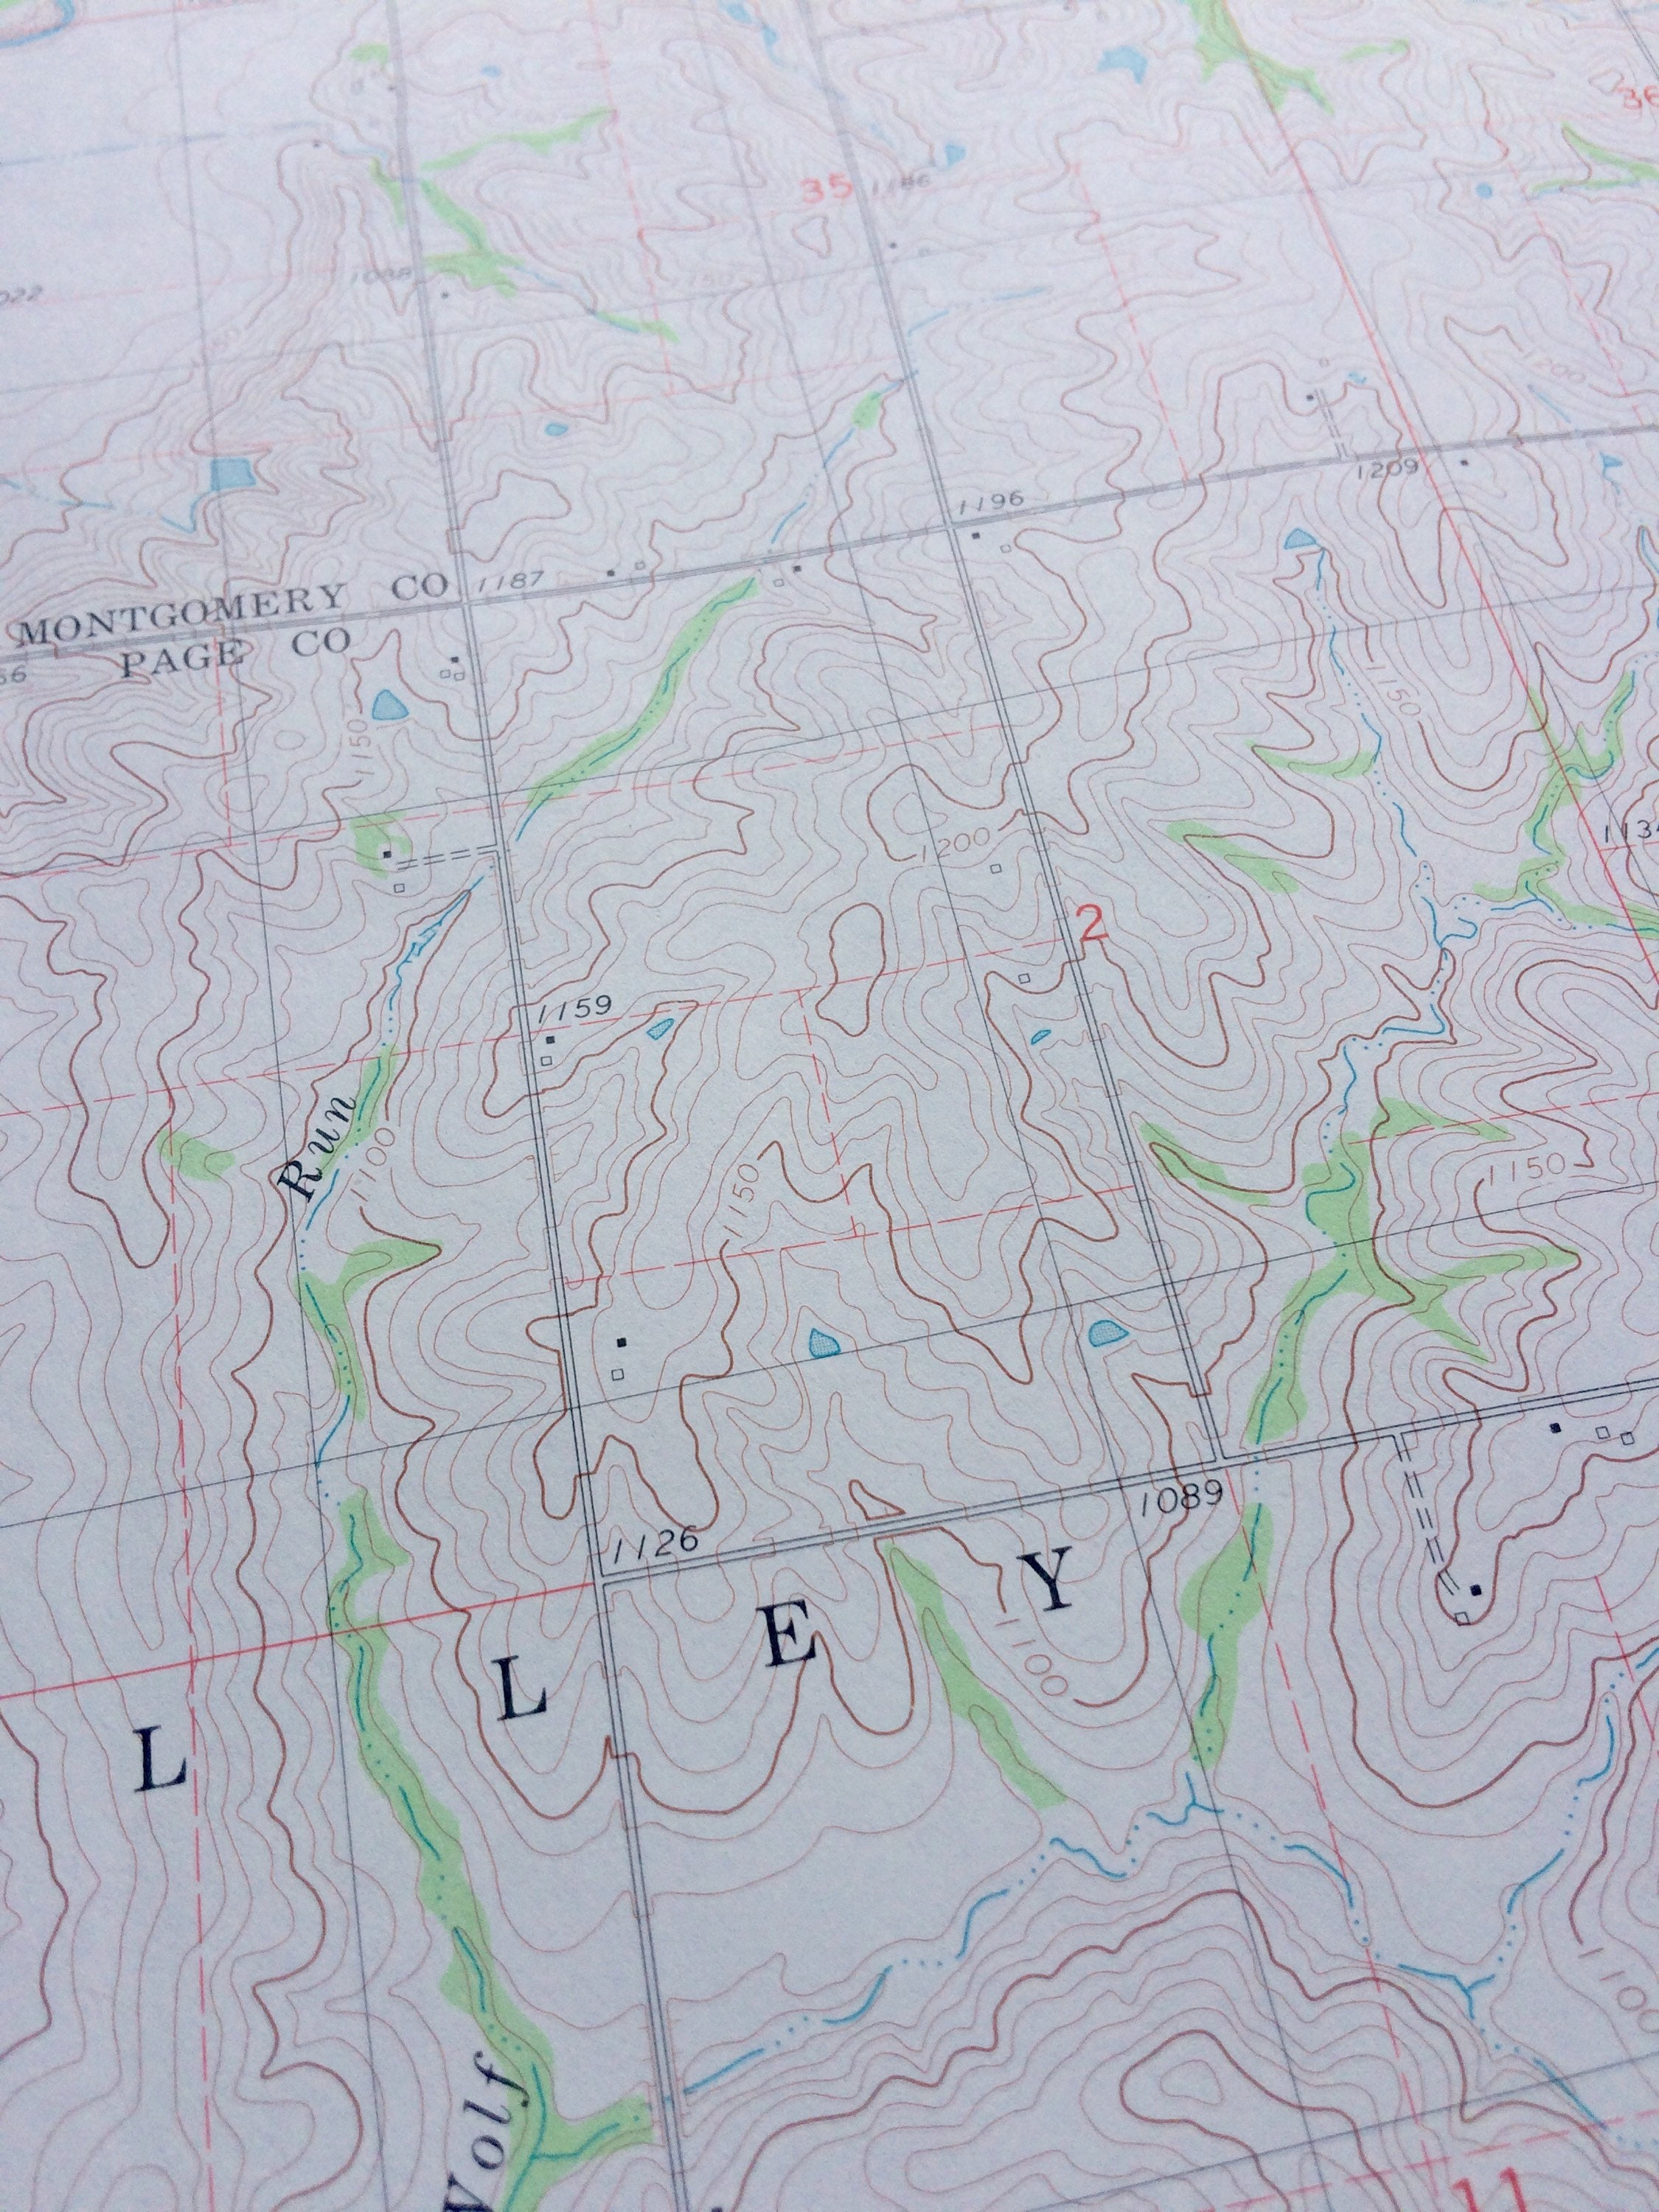 Full Size 22x30 Inch Vintage Topographic Map Vintage Map Geography